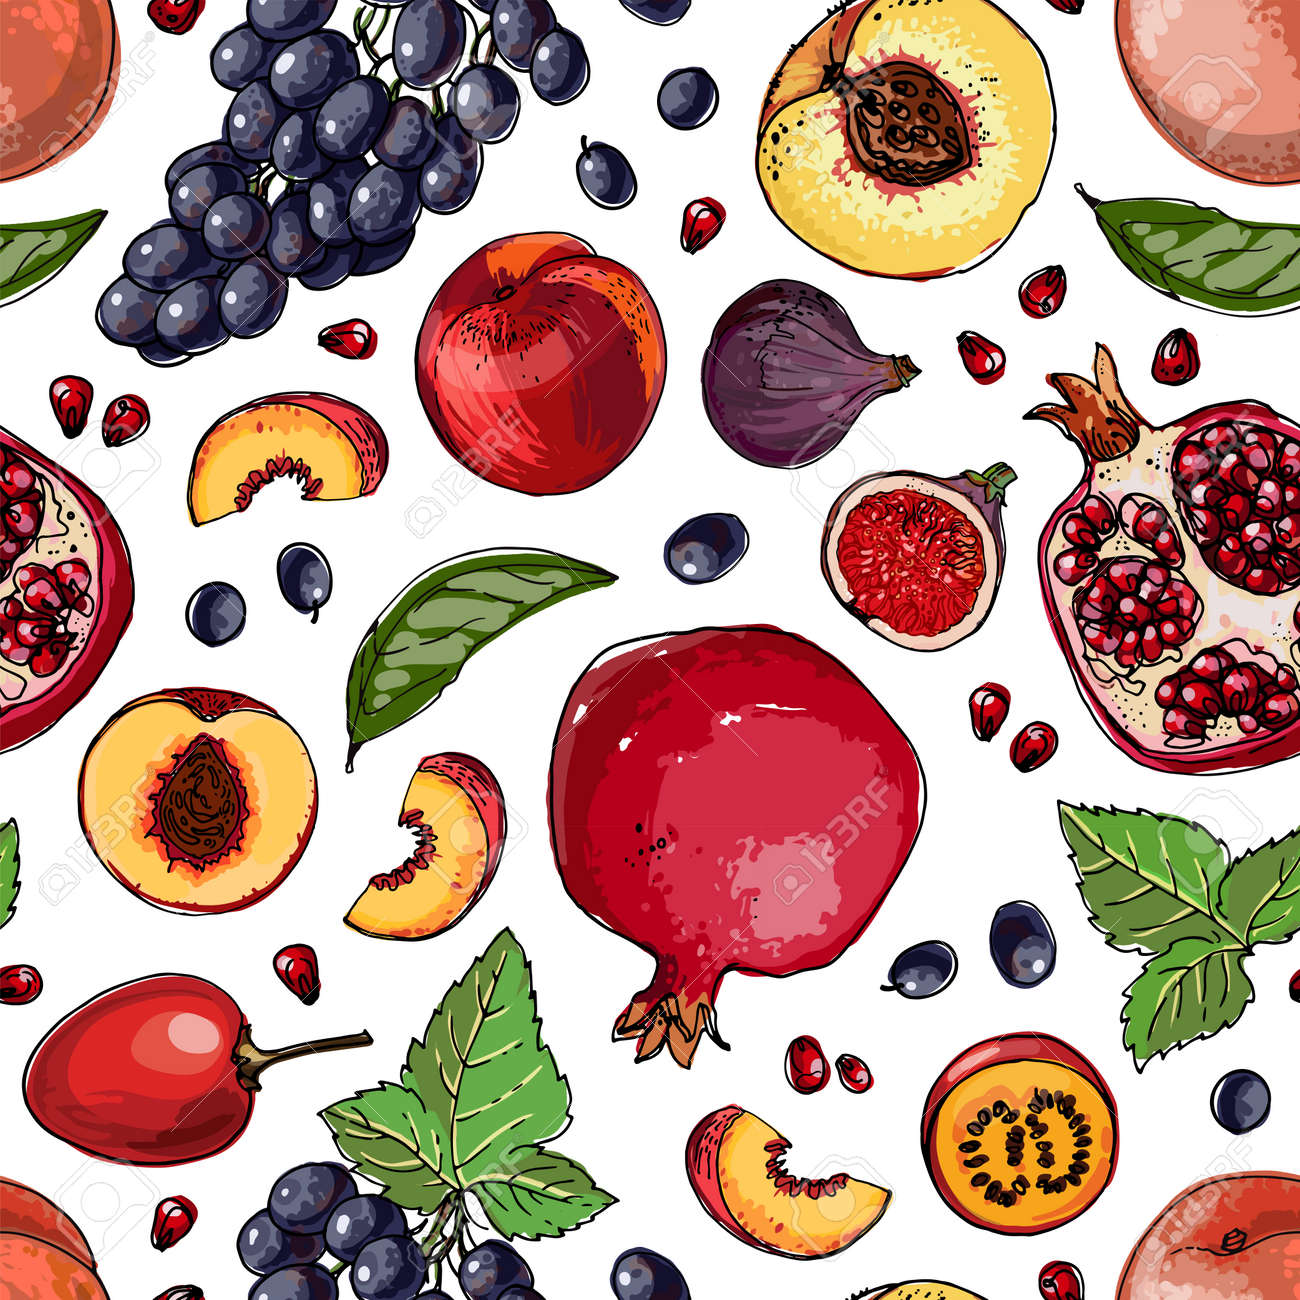 Seampless pattern vector color food. Exotic fruits and berries - 171951926